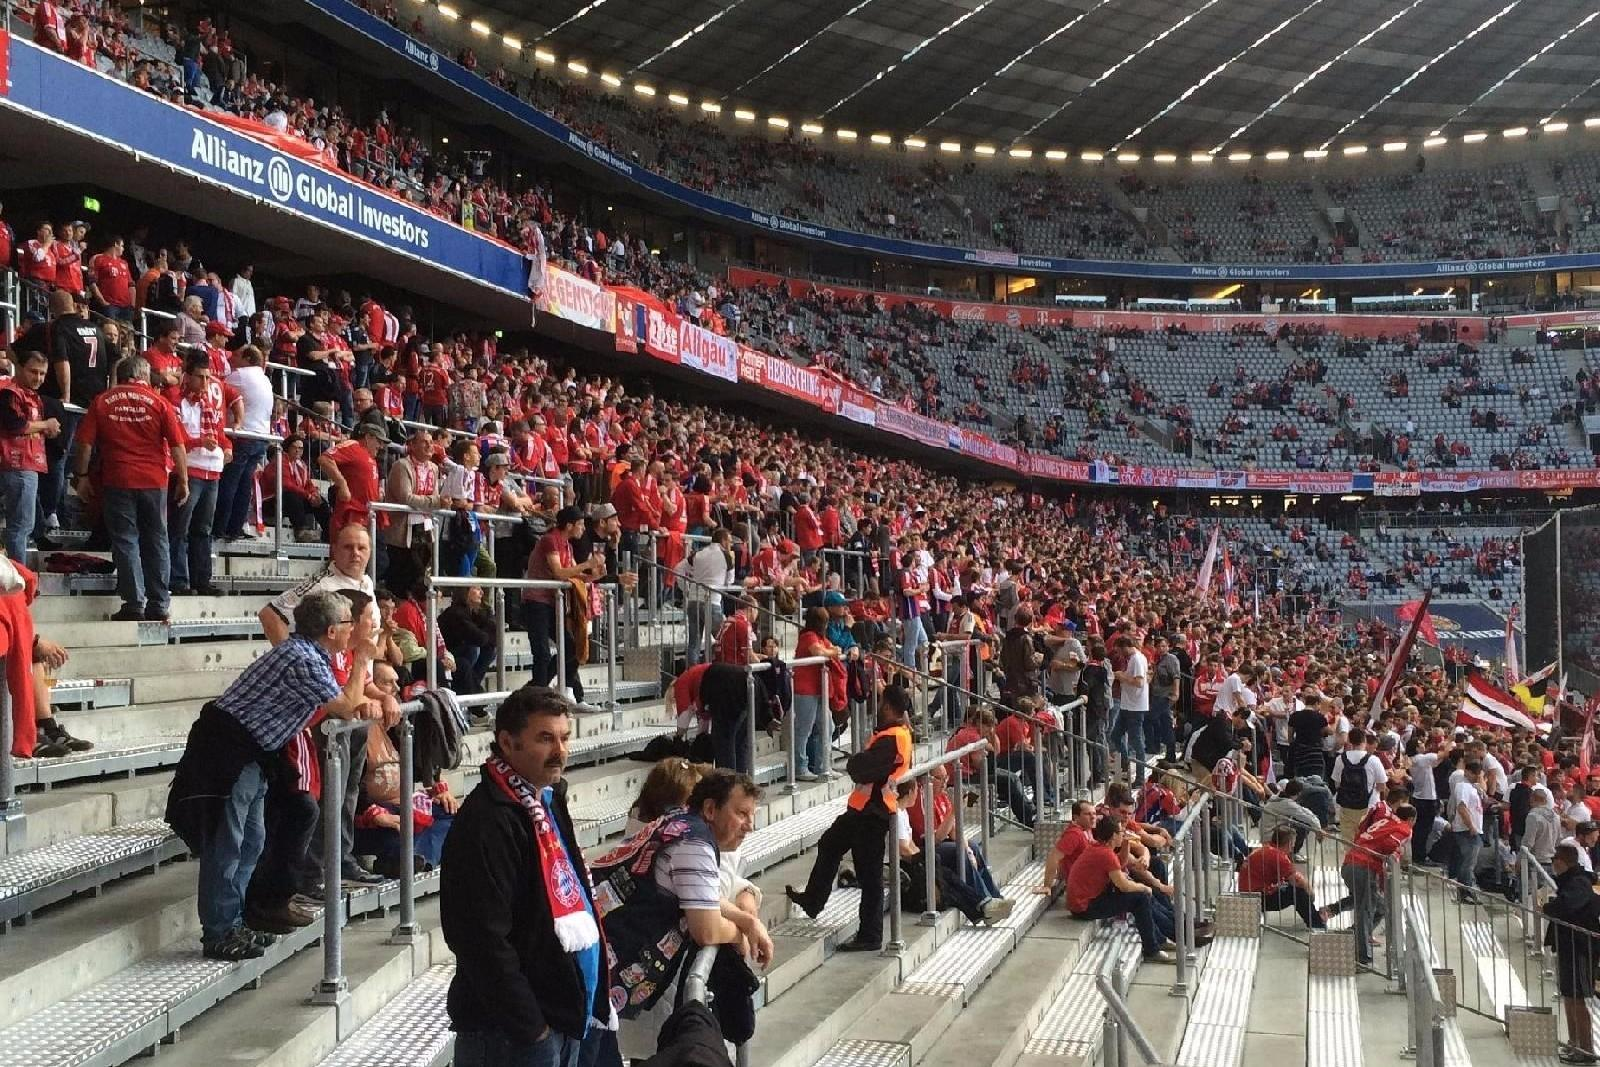 La Standing Area dell'Allianz Arena